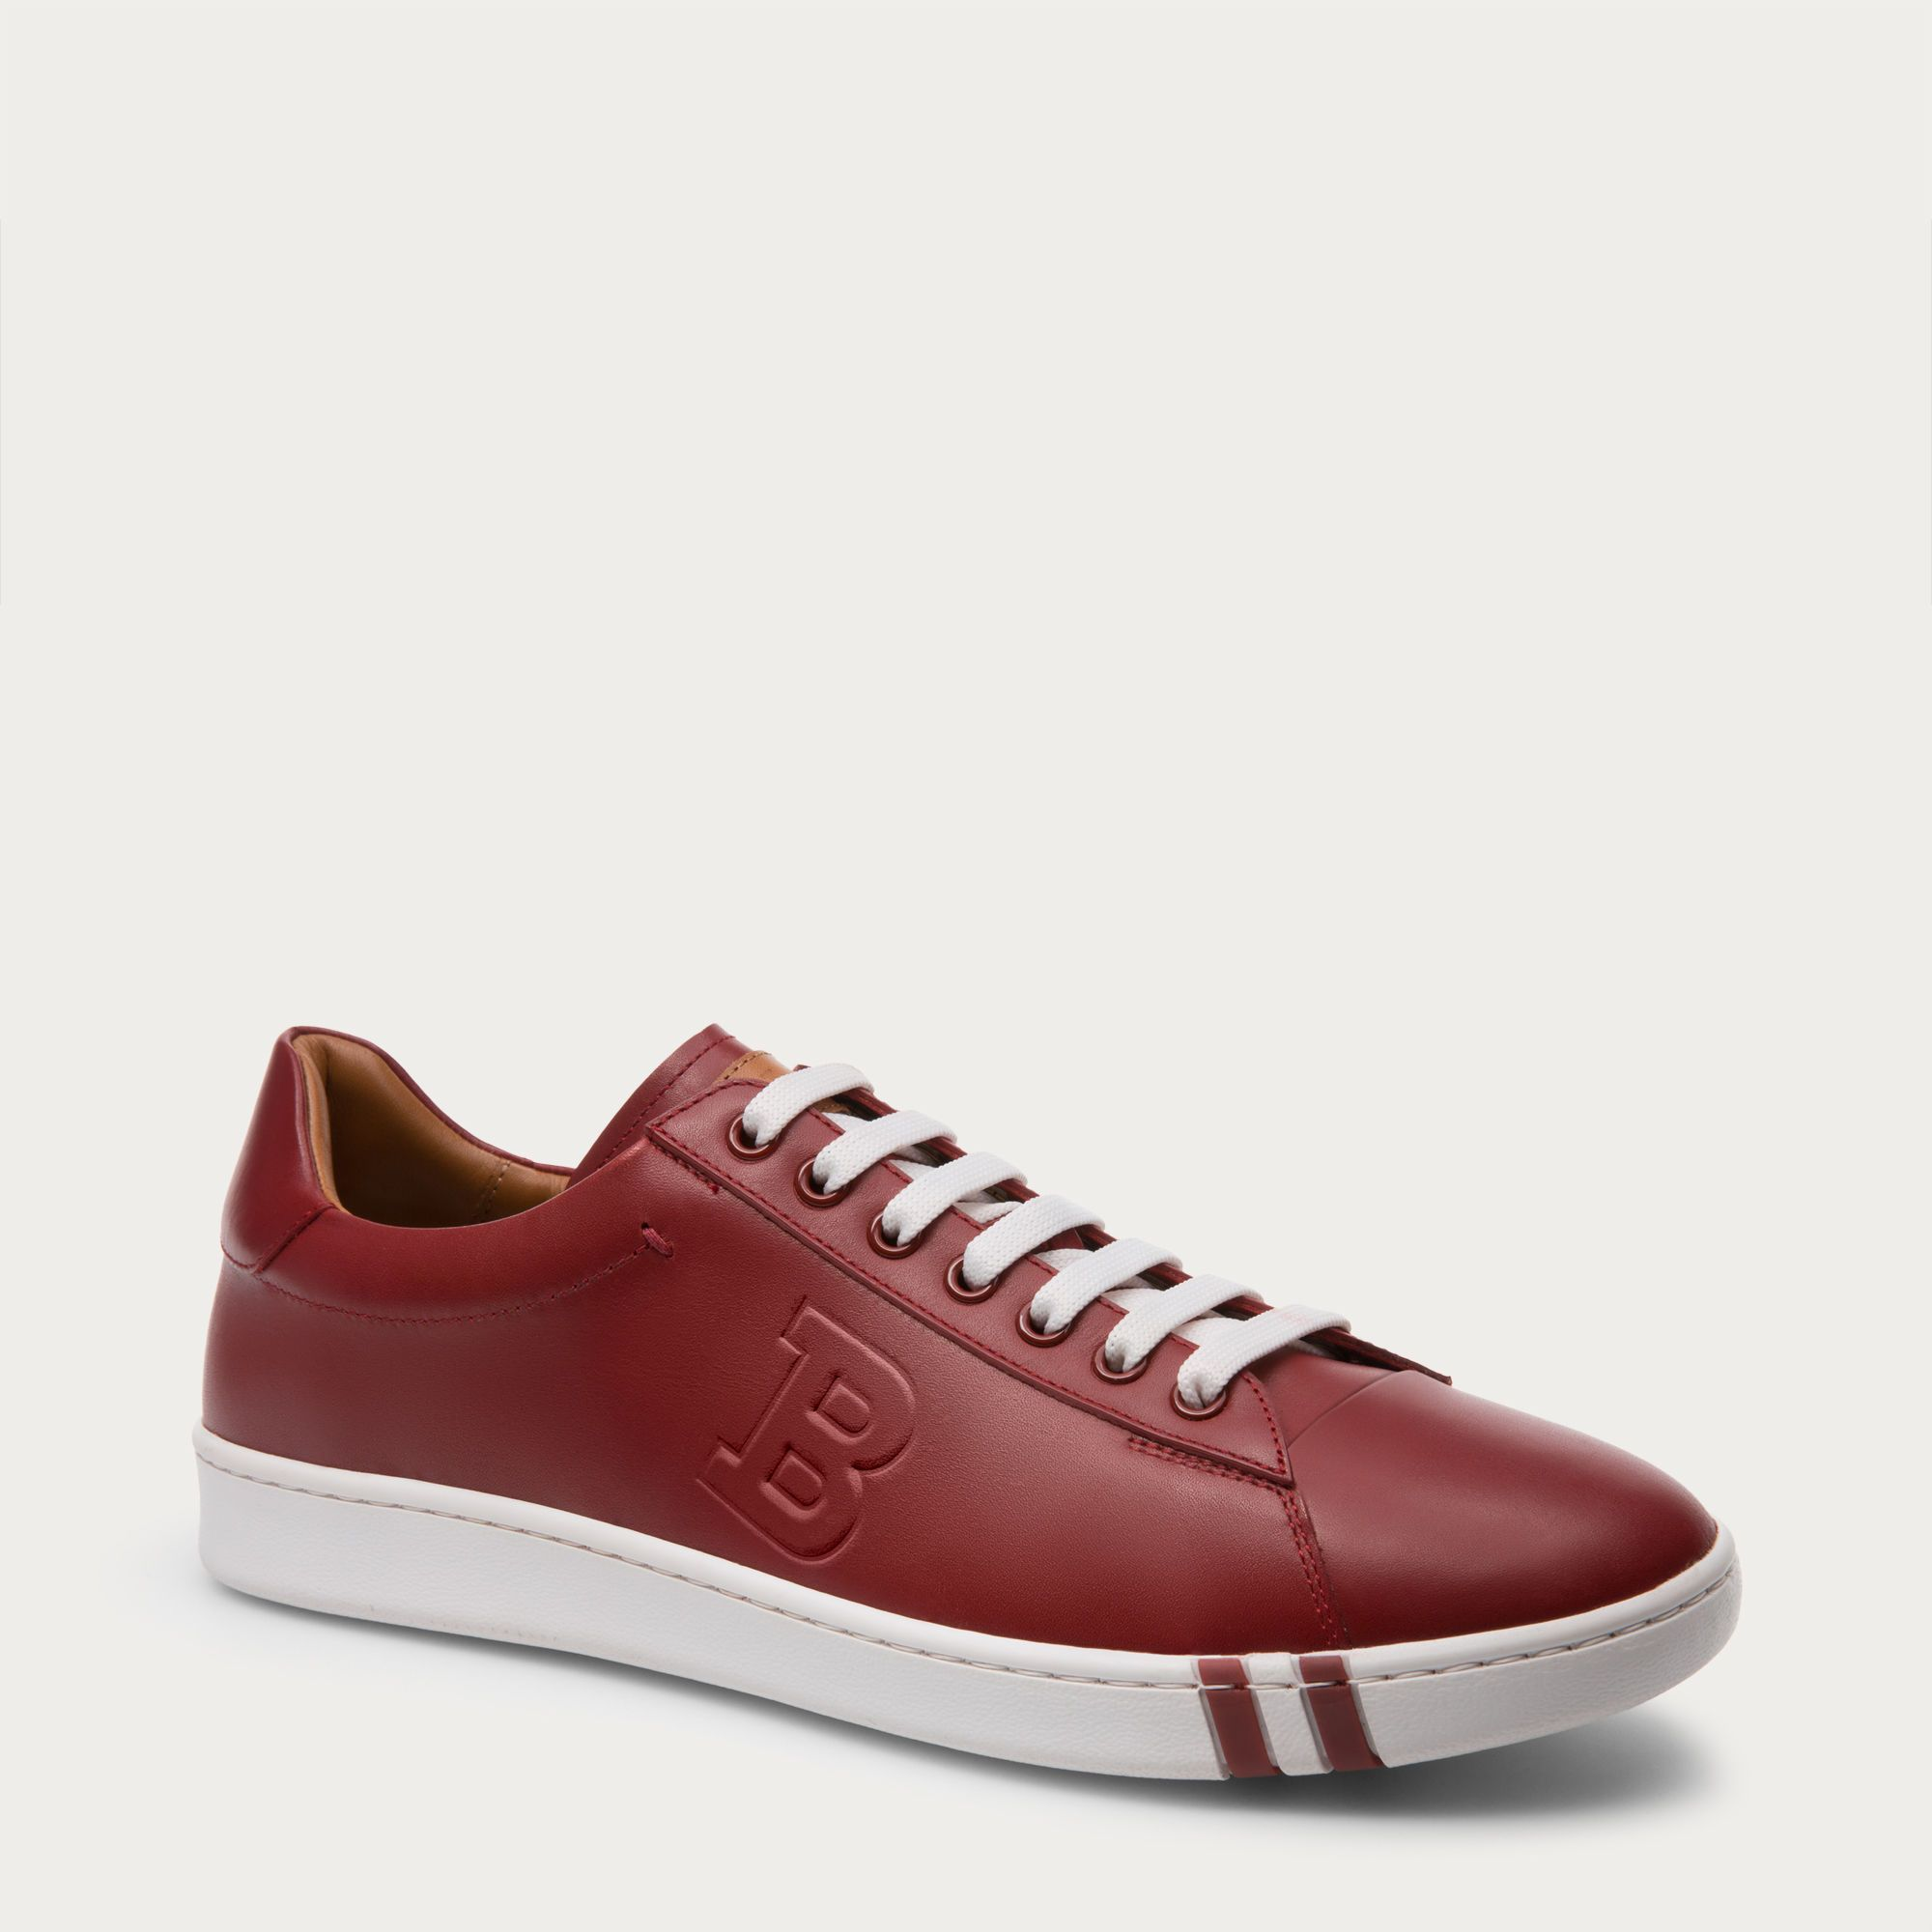 2887ae65f600f ASHER - BALLY RED 14 CALF Sneakers